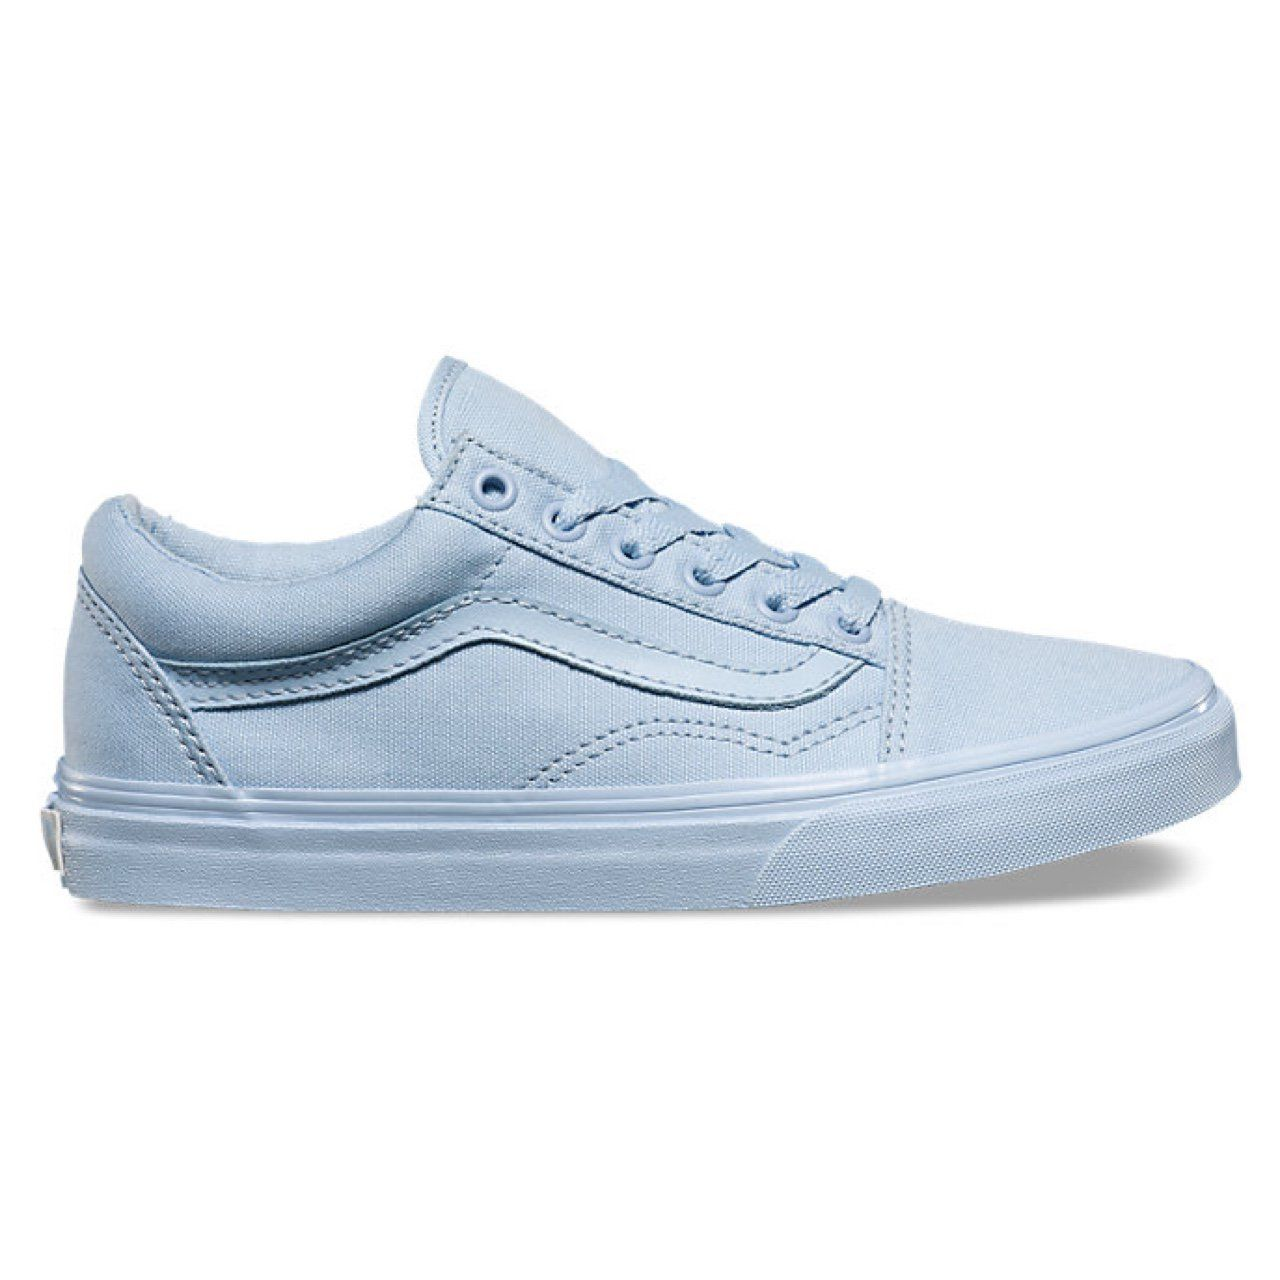 Mono Vans Old Skool In Skyway Baby Blue Size Us 6 5 Mens Us 8 Women S Never Worn Og 55 Shoes Classic Shoes